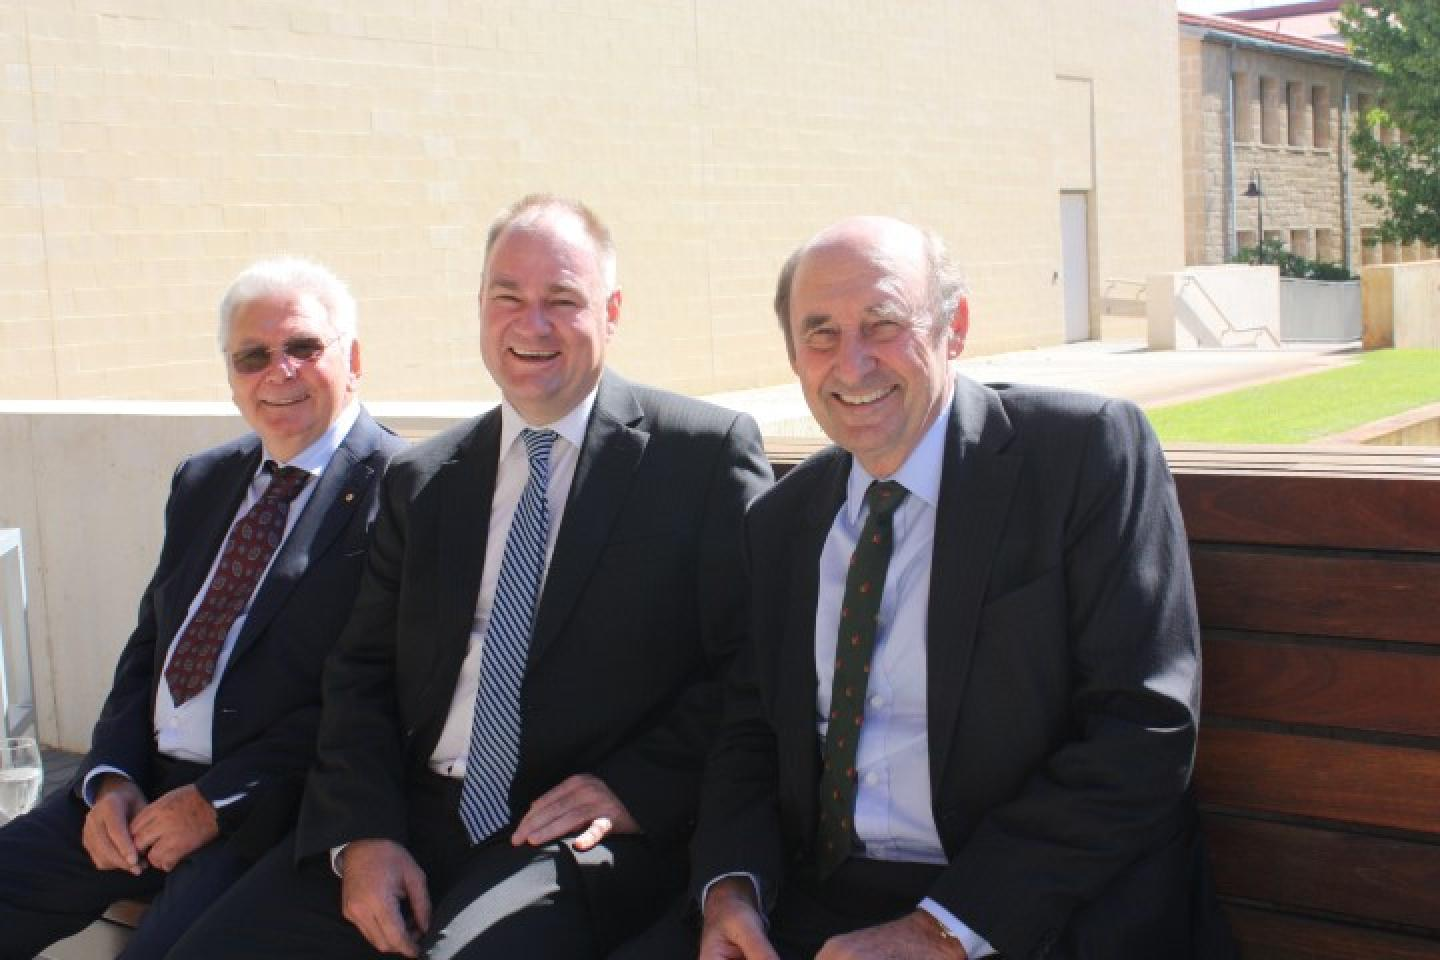 Ausplow managing director John Ryan (left), general manager Chris Farmer and New Norcia farmer Peter Nixon catch up for a chat during last week's Nuffield Australian Farming Scholars annual Sponsors' Luncheon.